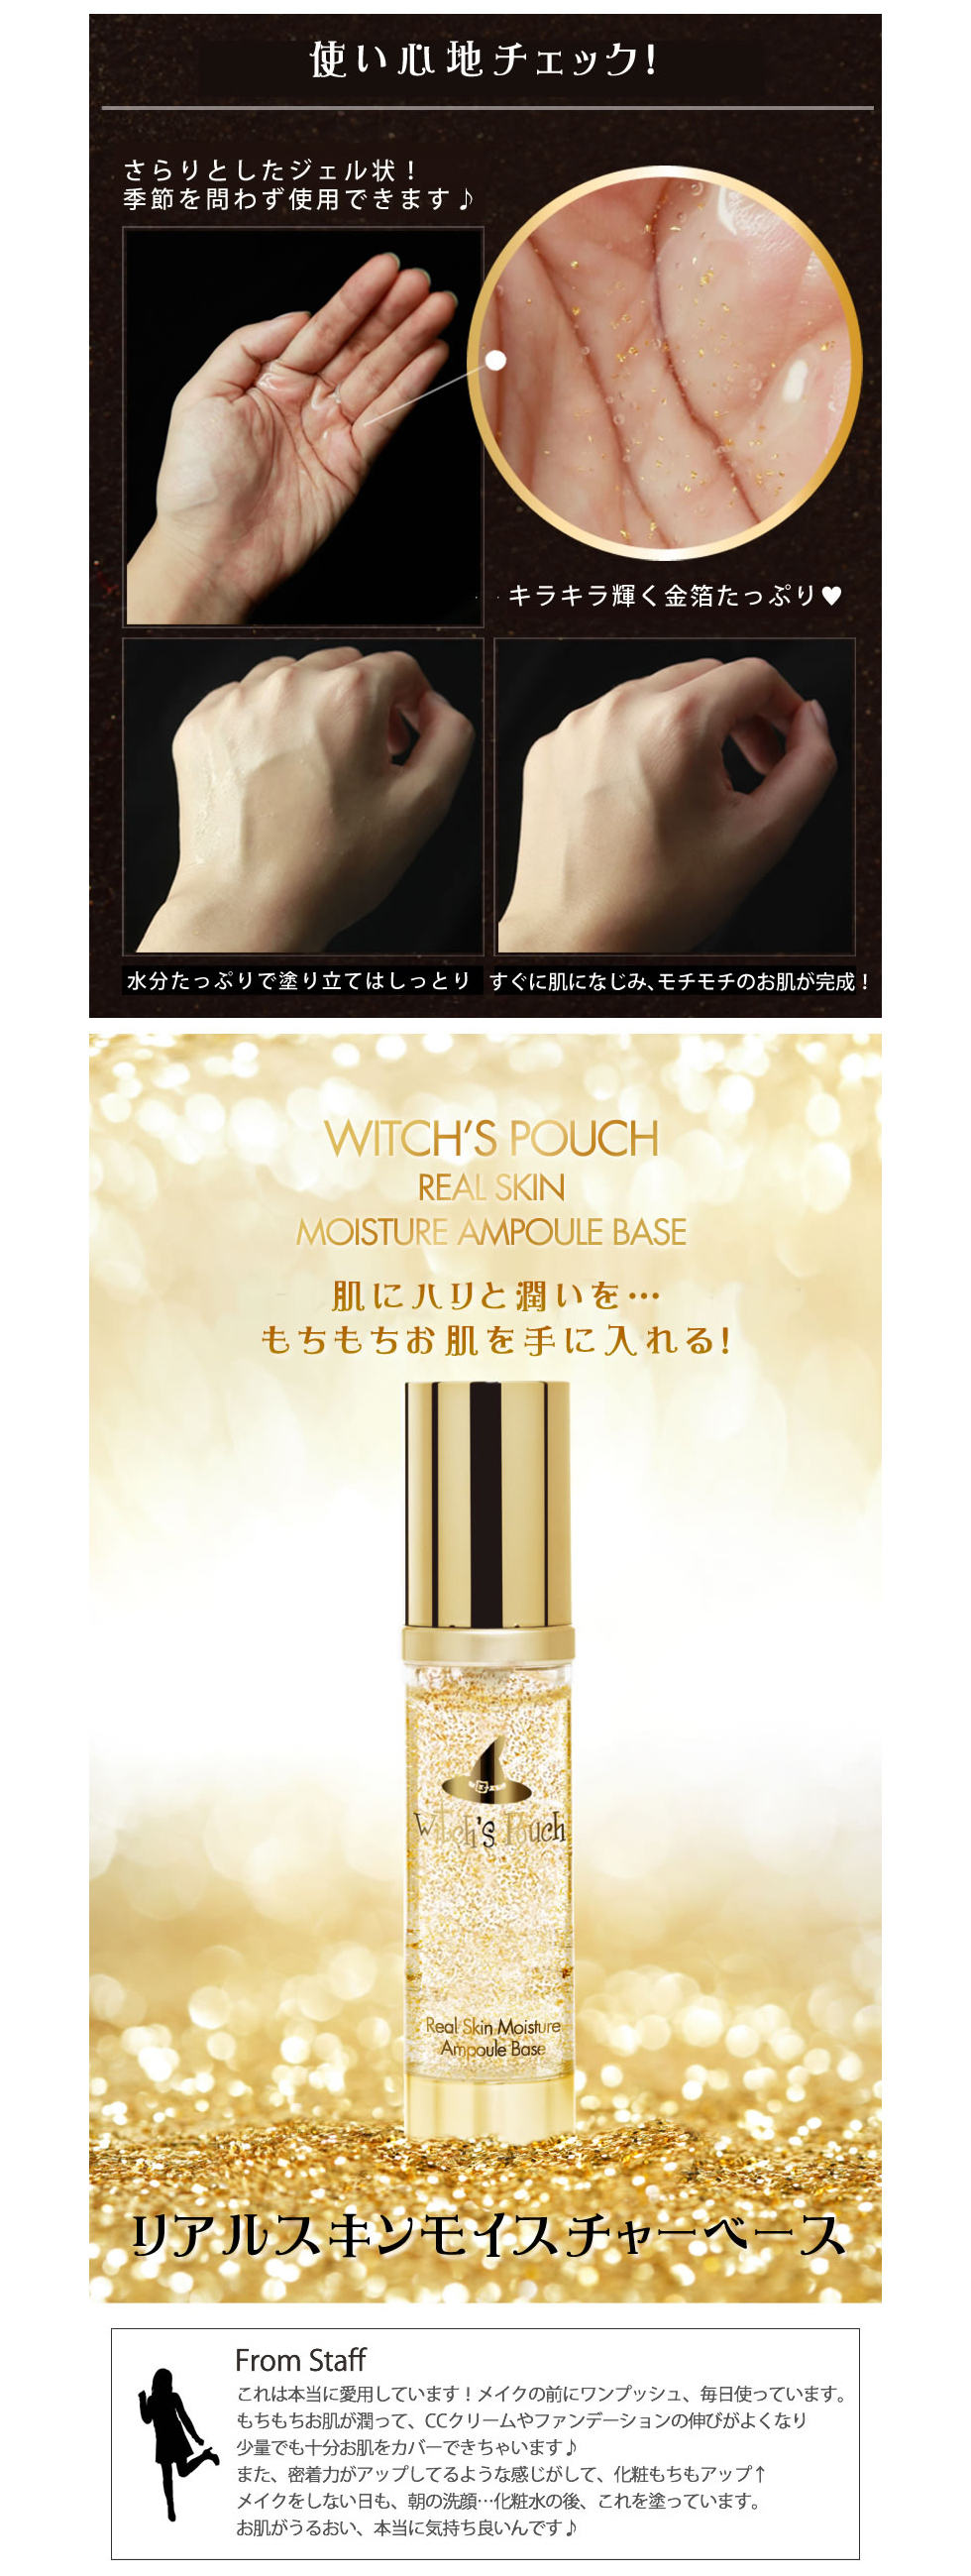 Witch's Pouch リアルスキンモイスチャーベース